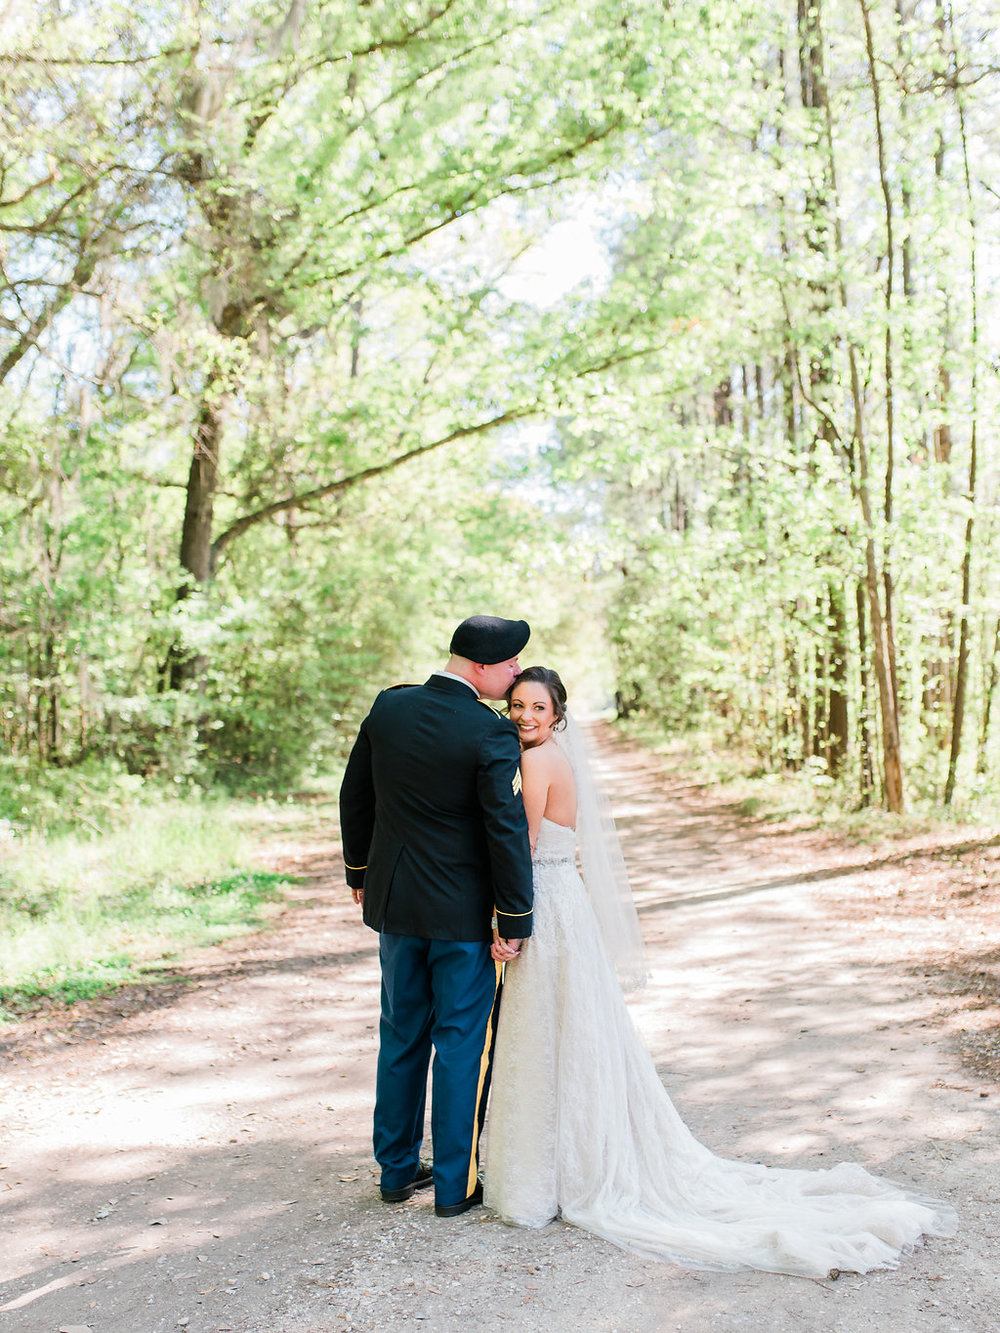 ivory-and-beau-bridal-boutique-lipski-surprise-wedding-5d-photography-military-wedding-savannah-savannah-military-bride-surprise-wedding-11.jpg